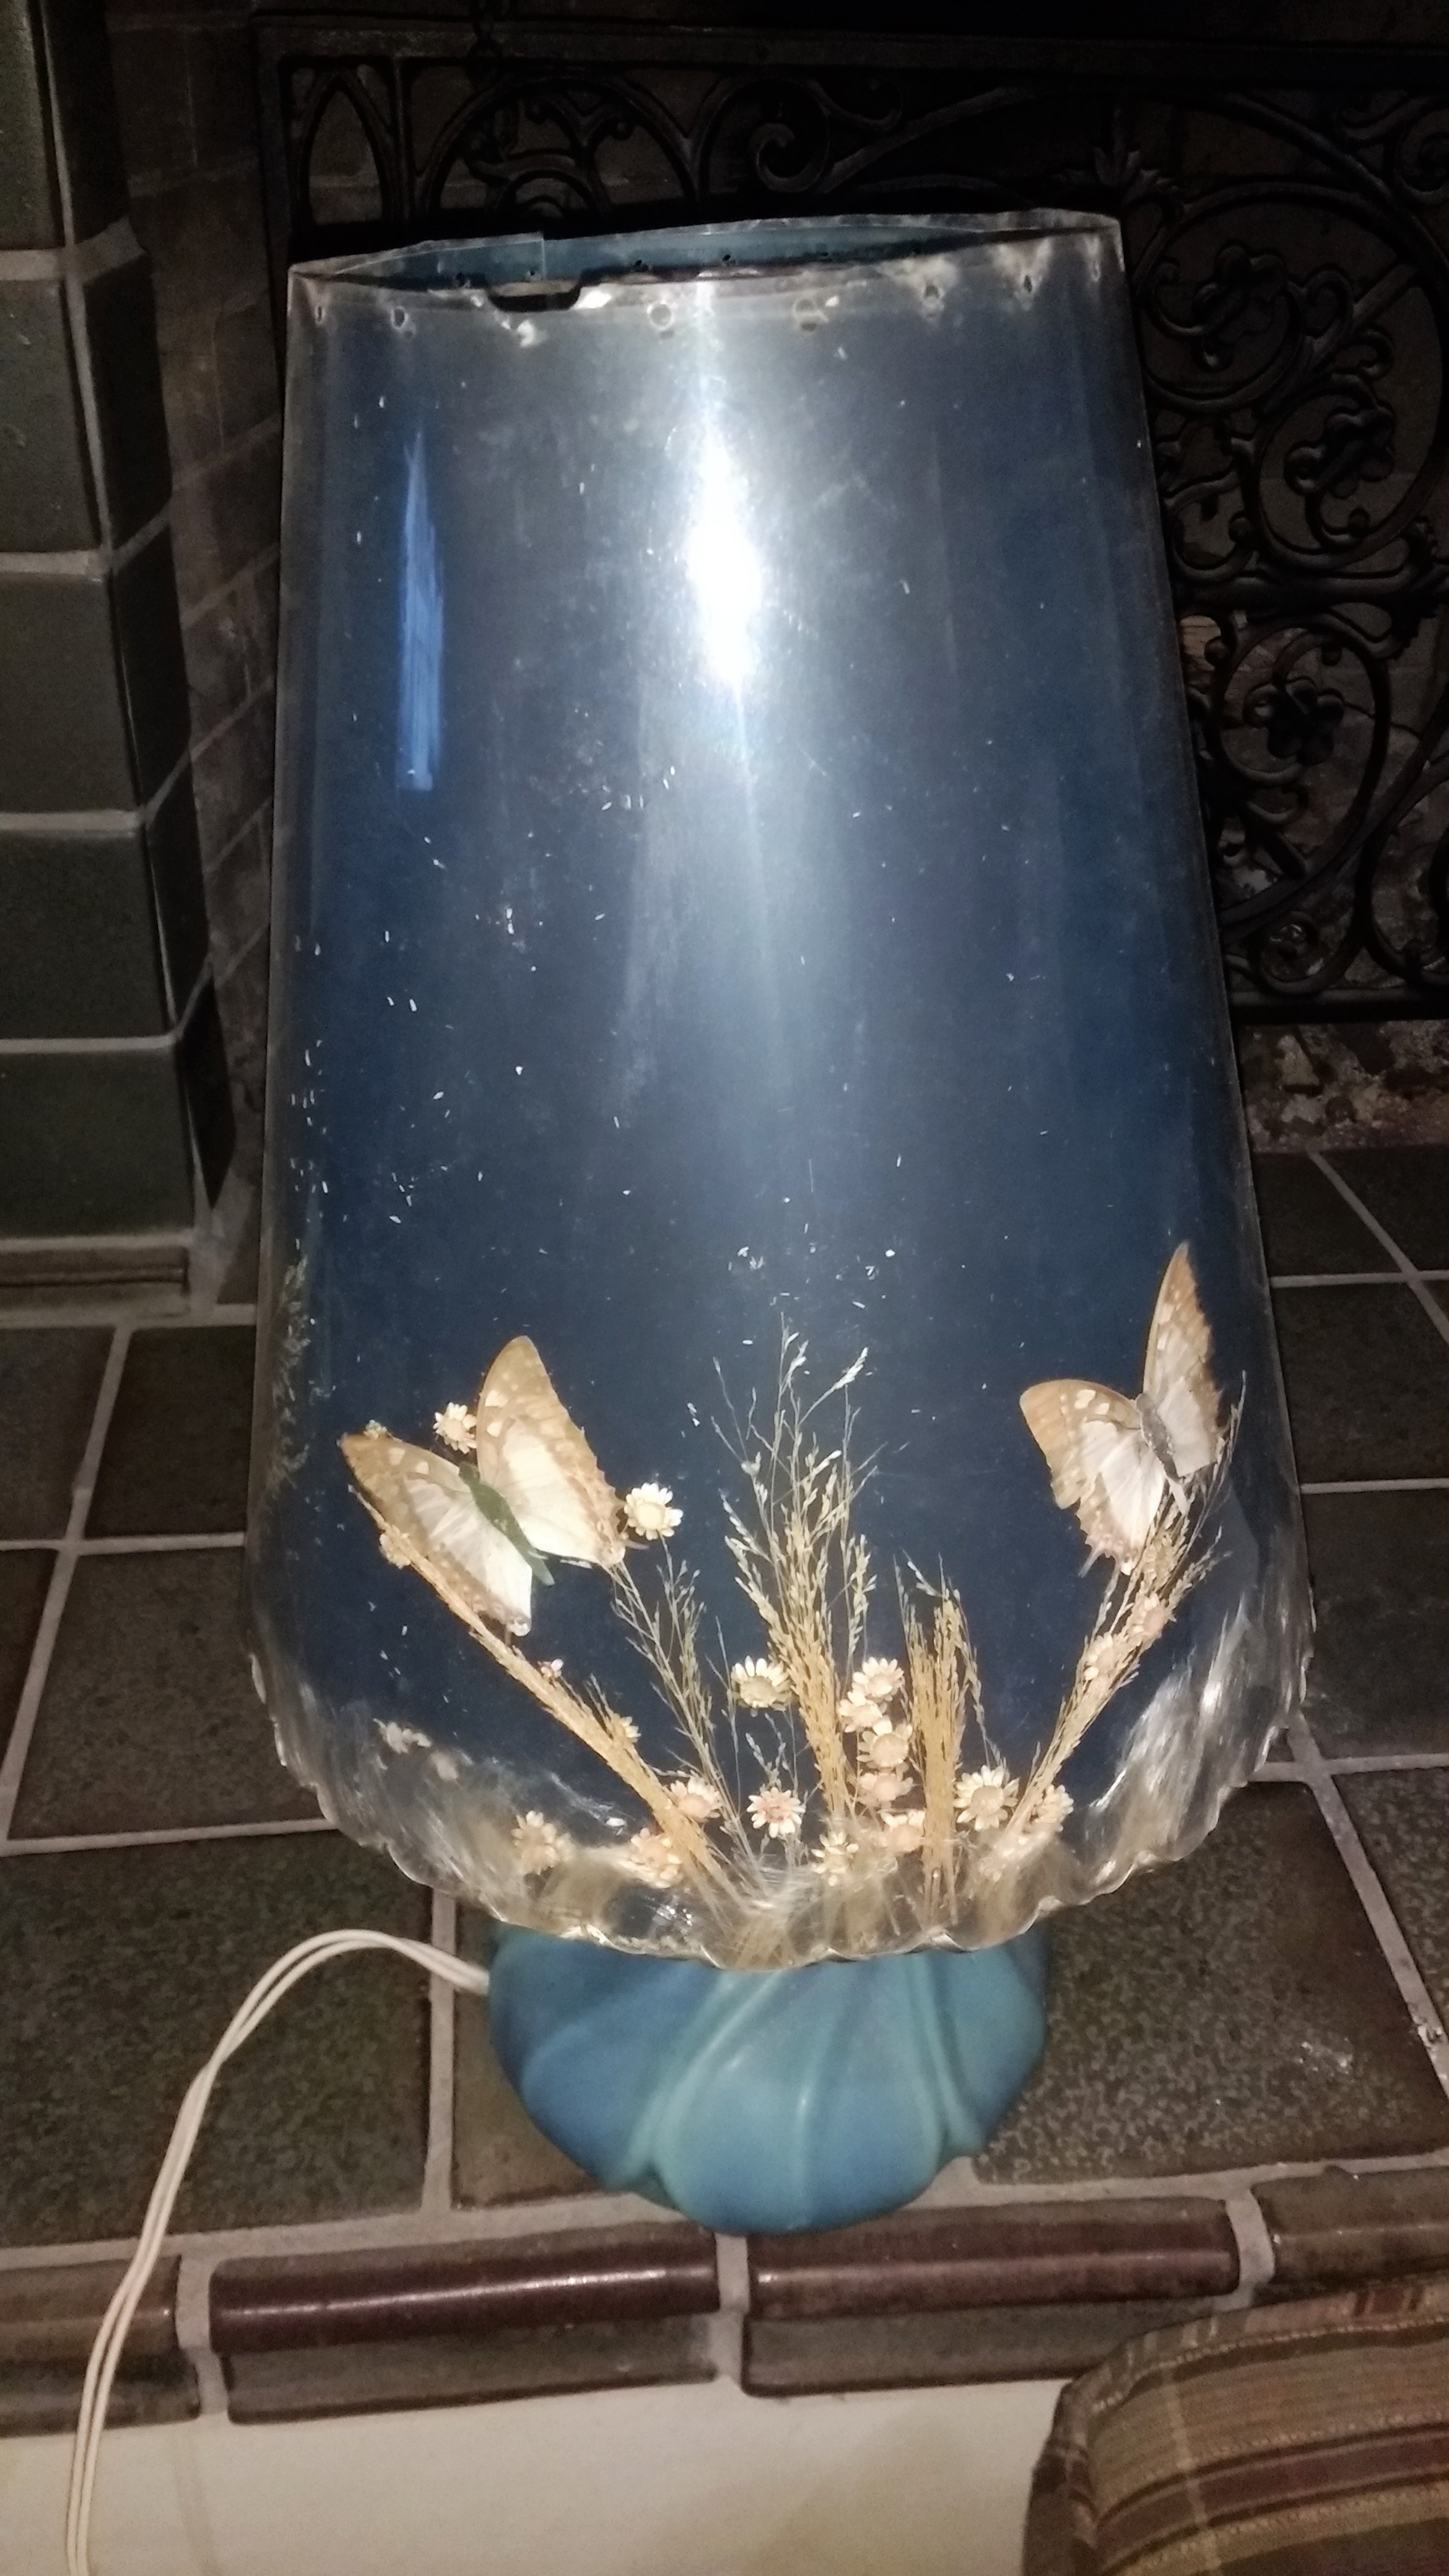 30 Famous Van Briggle Lorelei Vase Markings 2021 free download van briggle lorelei vase markings of i have a van briggle lamp with a blue butterfly shade during a intended for img 20170615 204307411